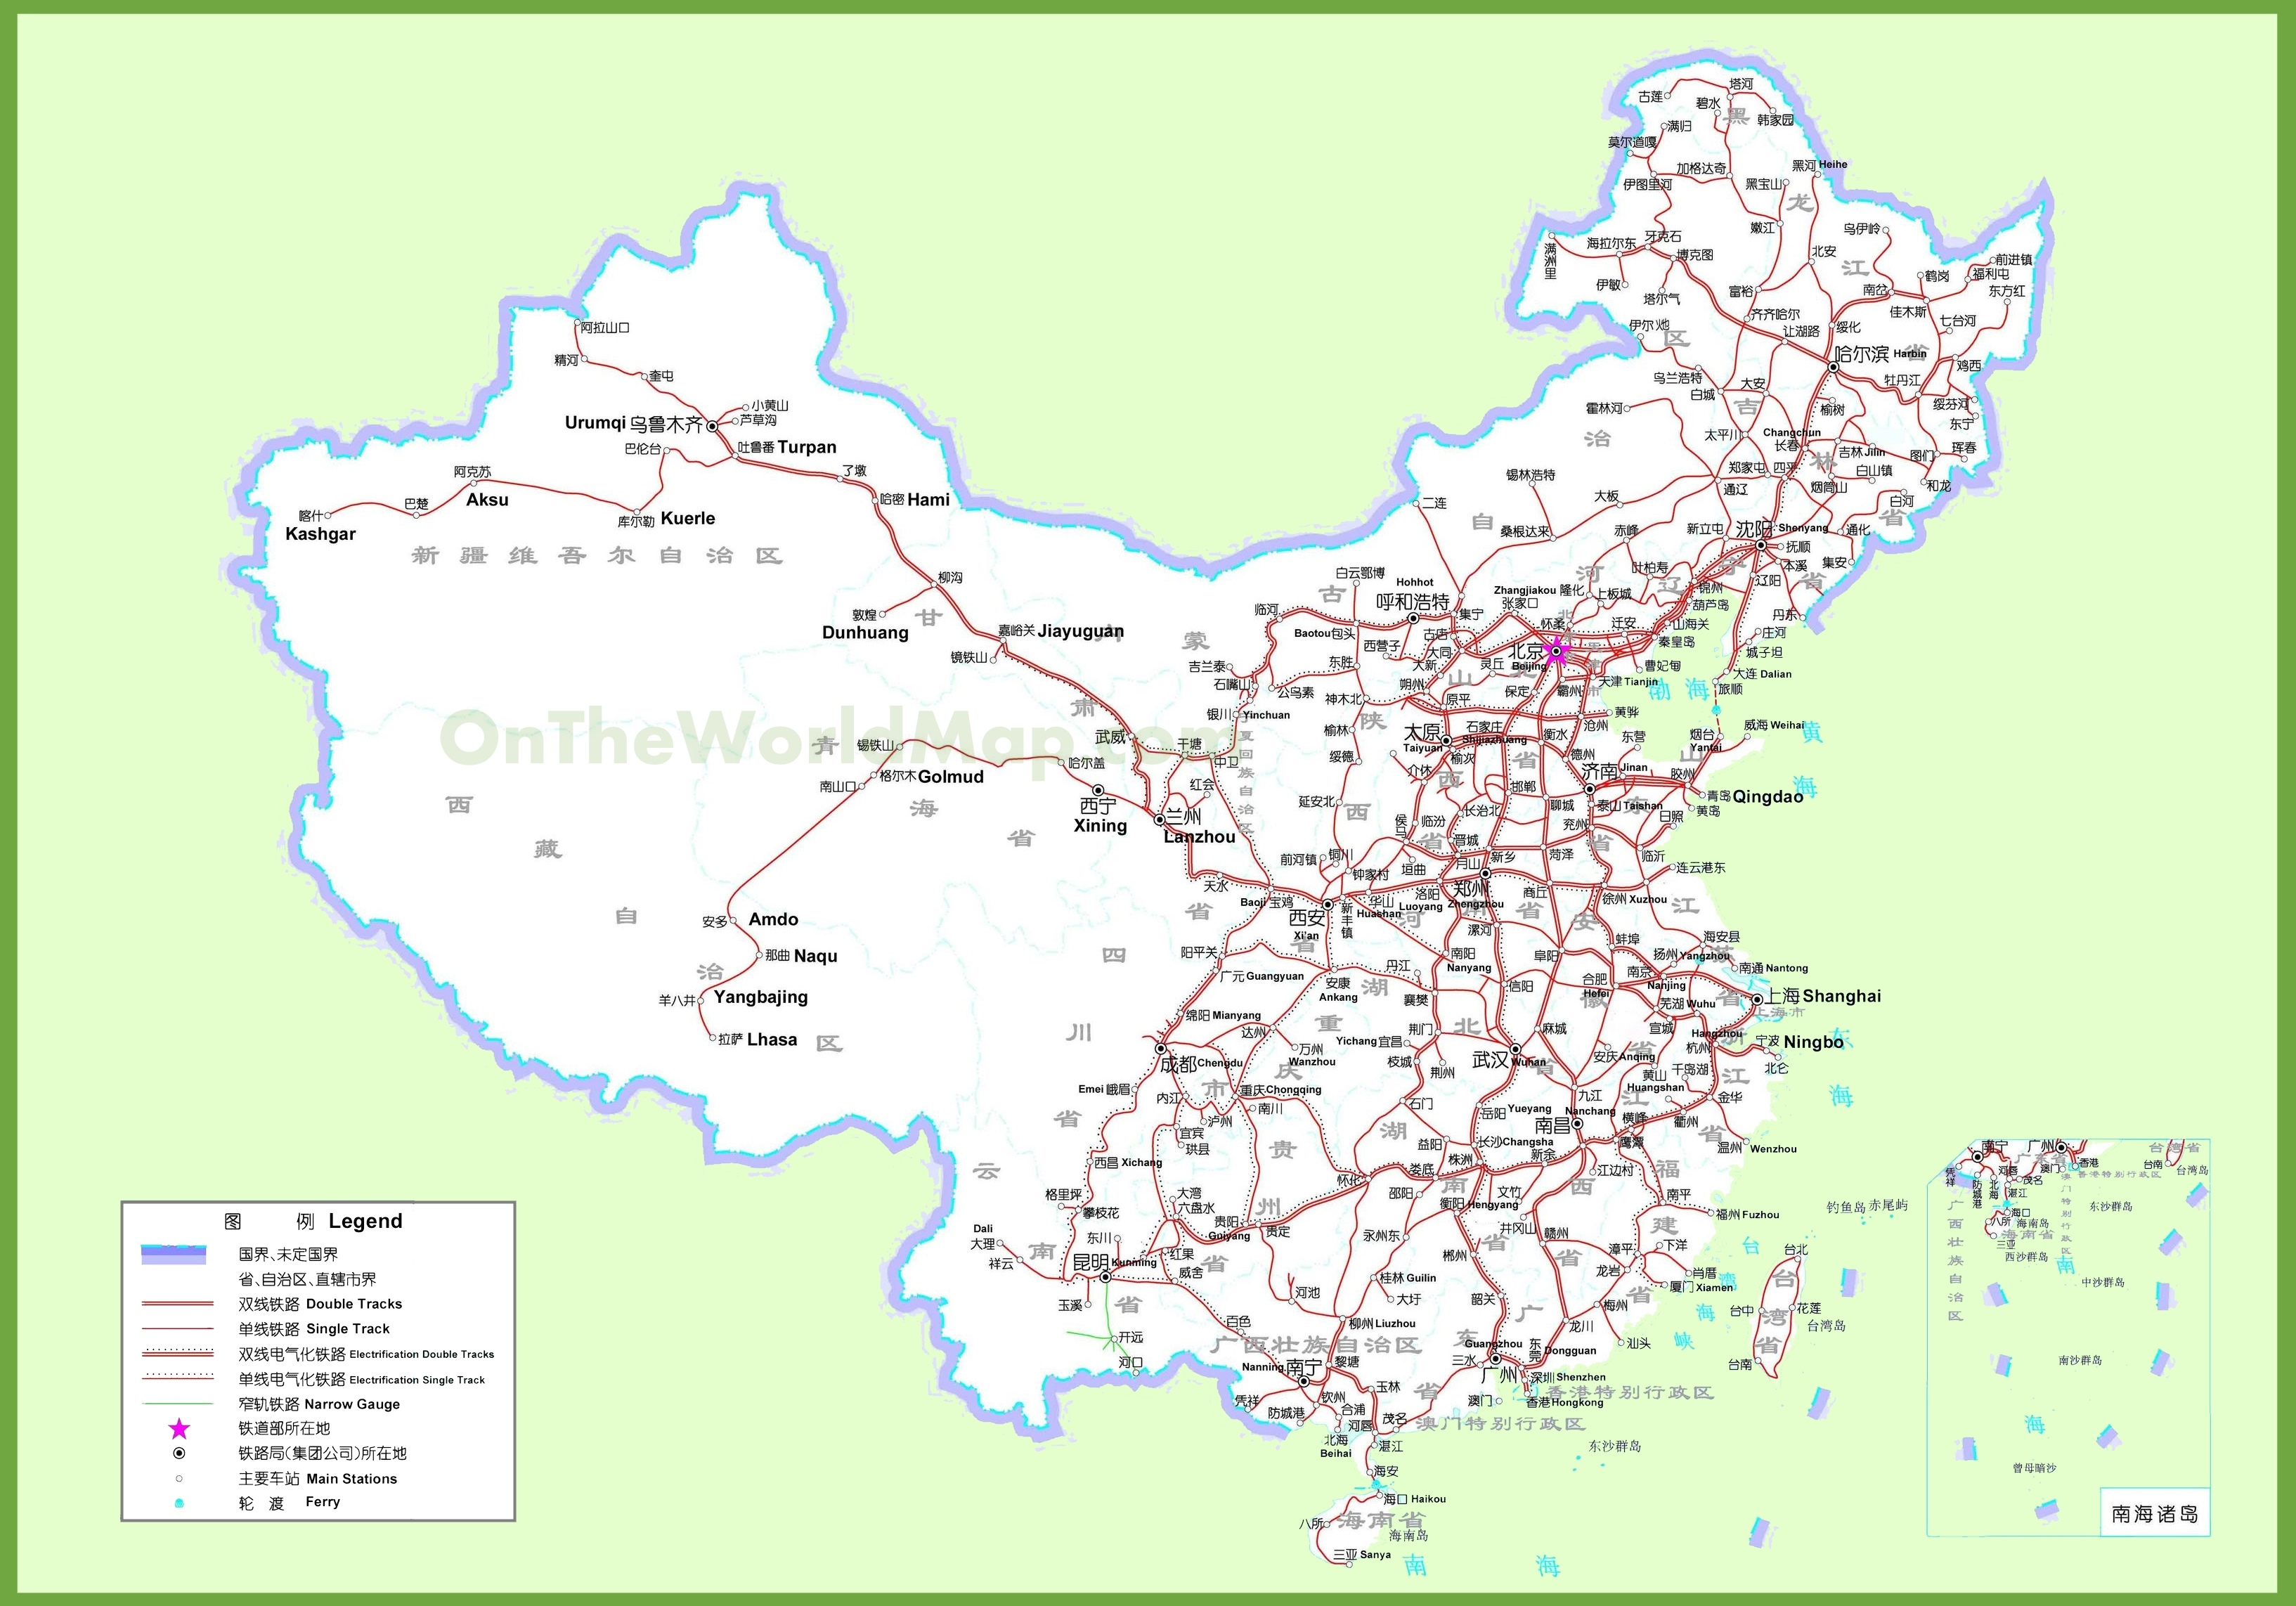 printable paris map with Railway Map Of China on The United States   Growth  26 Expansion likewise Grenada Location On The North America Map moreover File 2e Arrondissement  Paris  France   Open Street Map further Dublin Zoo Map as well Athens Metro Map.